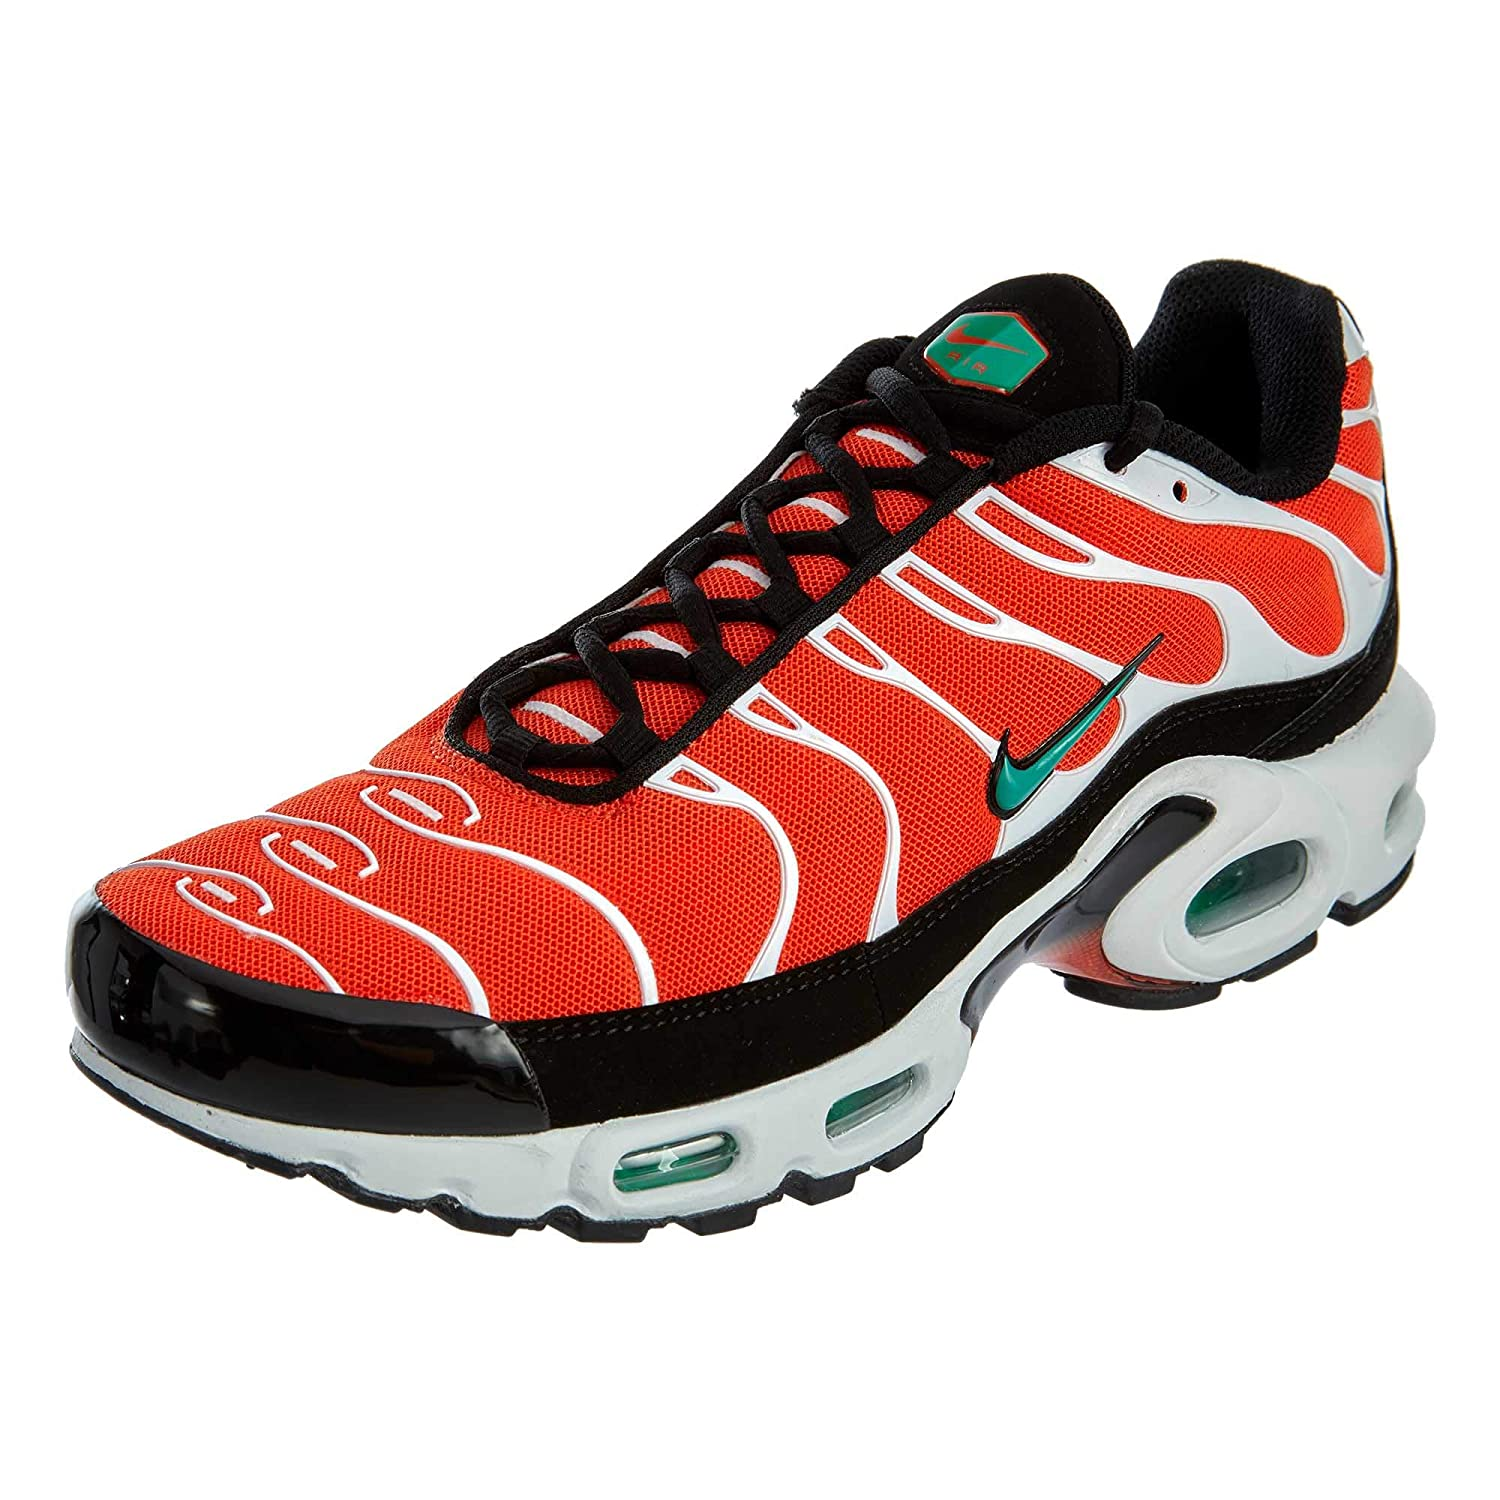 best sneakers 47ee0 52eae Nike Men's Air Max Plus Team Orange/Neptune Green/White/Black Nylon Casual  Shoes 11 (D) M US